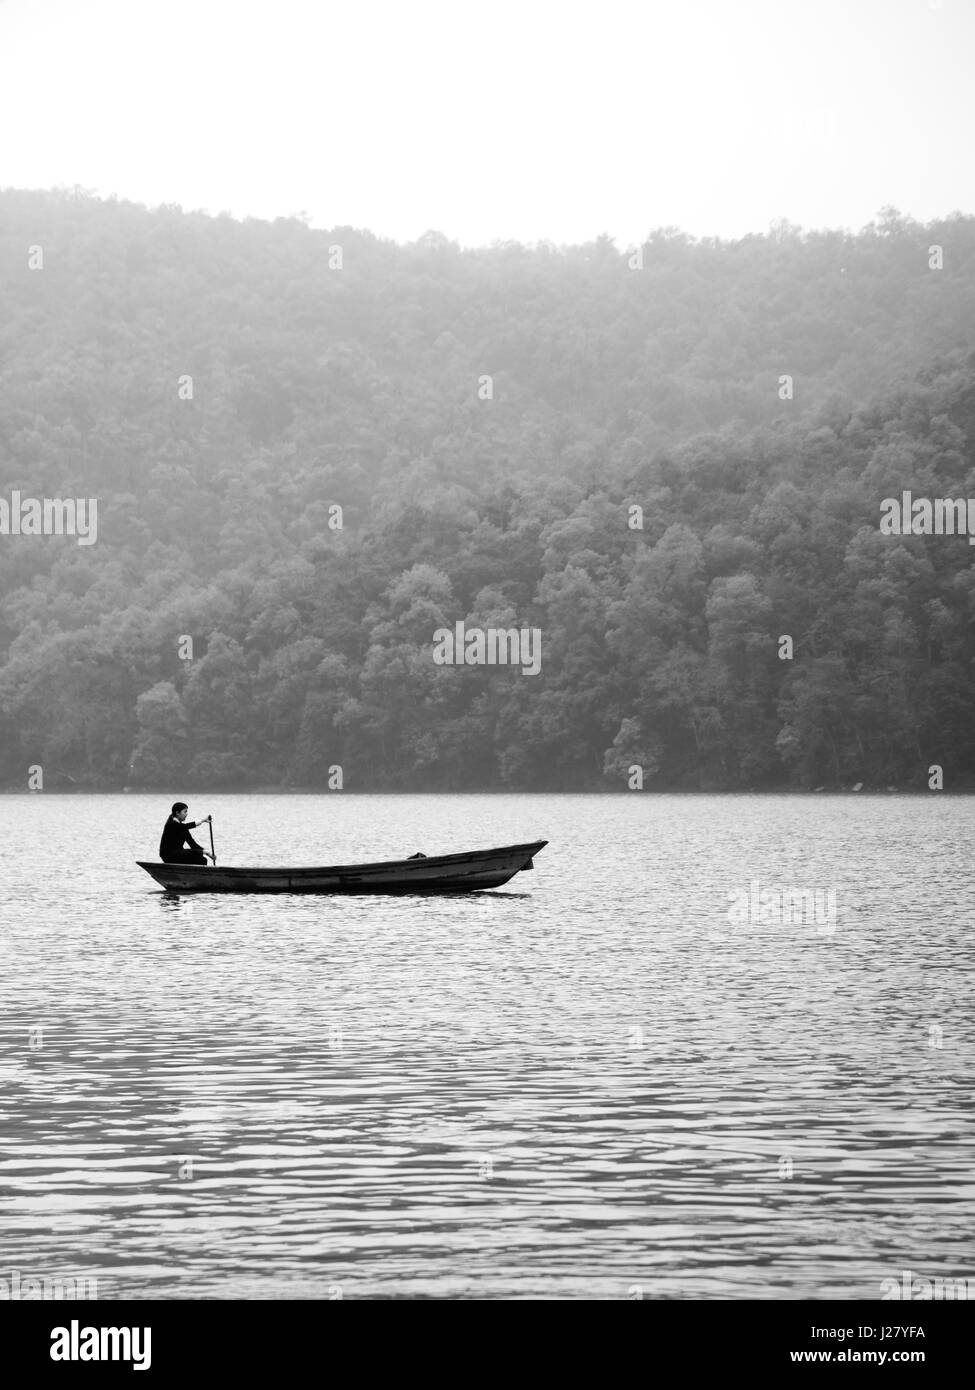 A woman alone in a canoe boat paddling on Fewa Lake, Pokhara on a misty morning in black and white. Pokhara, Nepal. - Stock Image